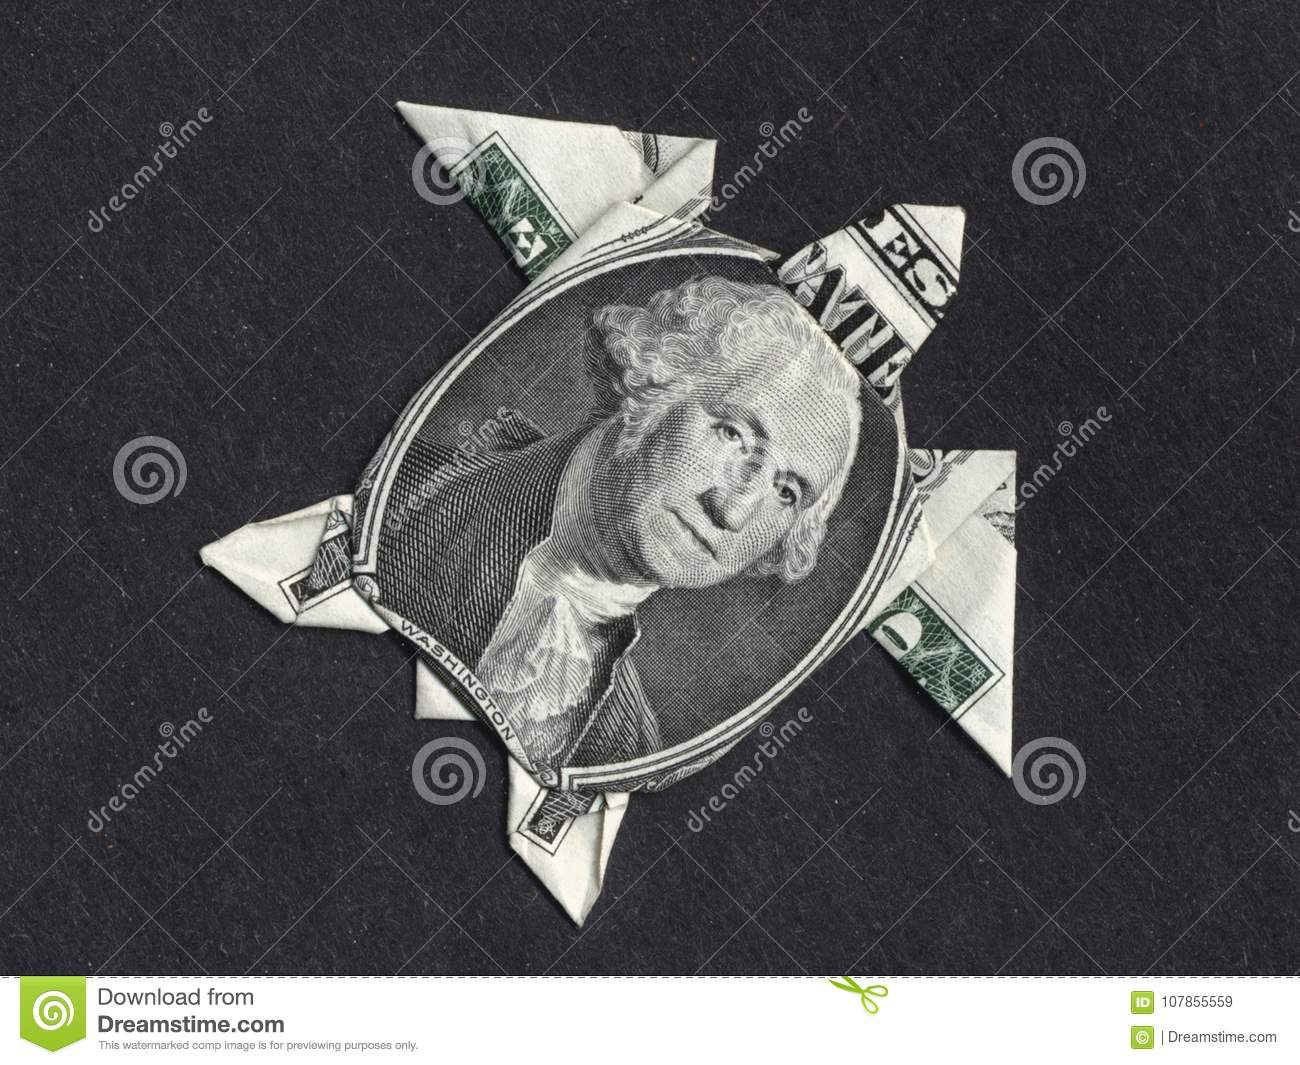 Money origami sea turtle dollar bill art stock image image money origami sea turtle dollar bill art jeuxipadfo Choice Image